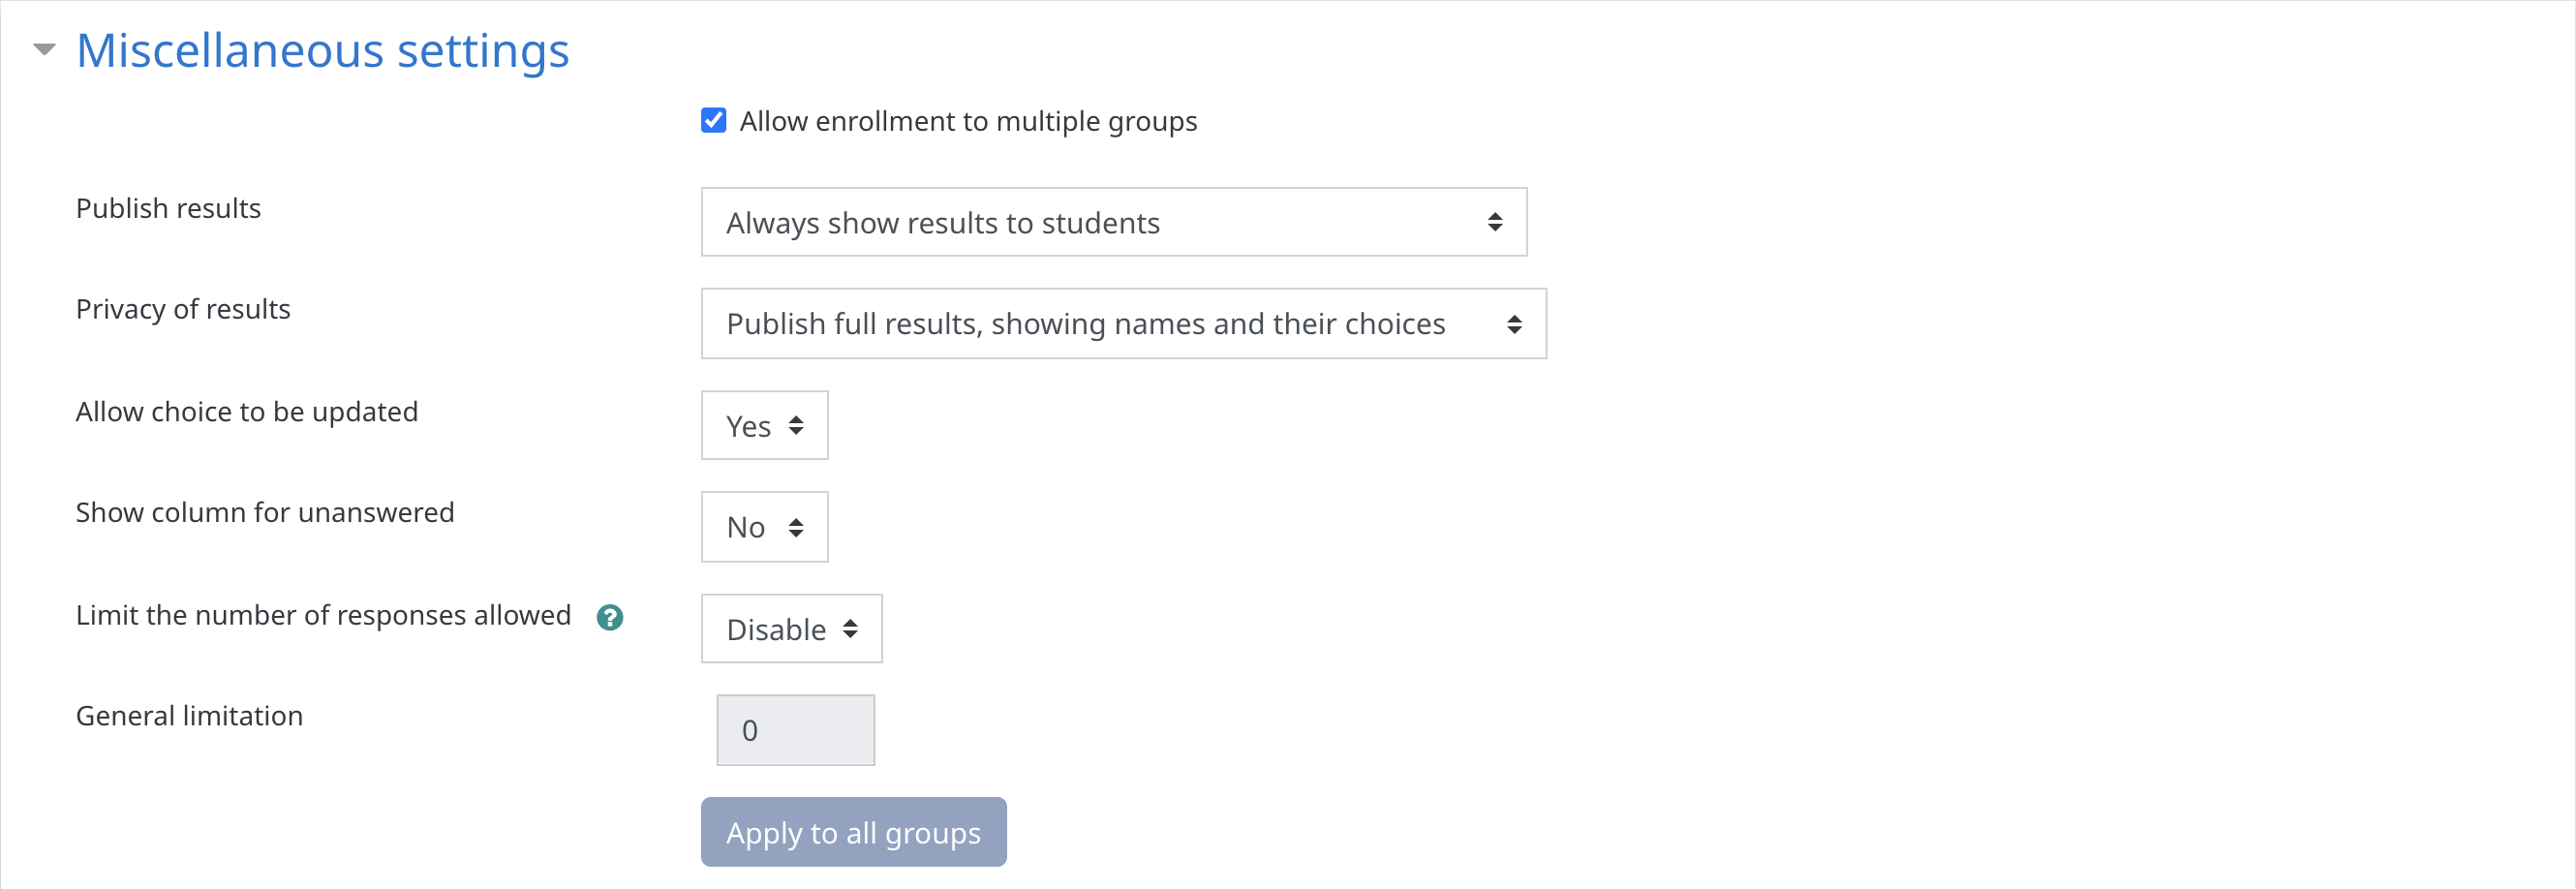 Group Activity settings showing the Miscellaneous settings options